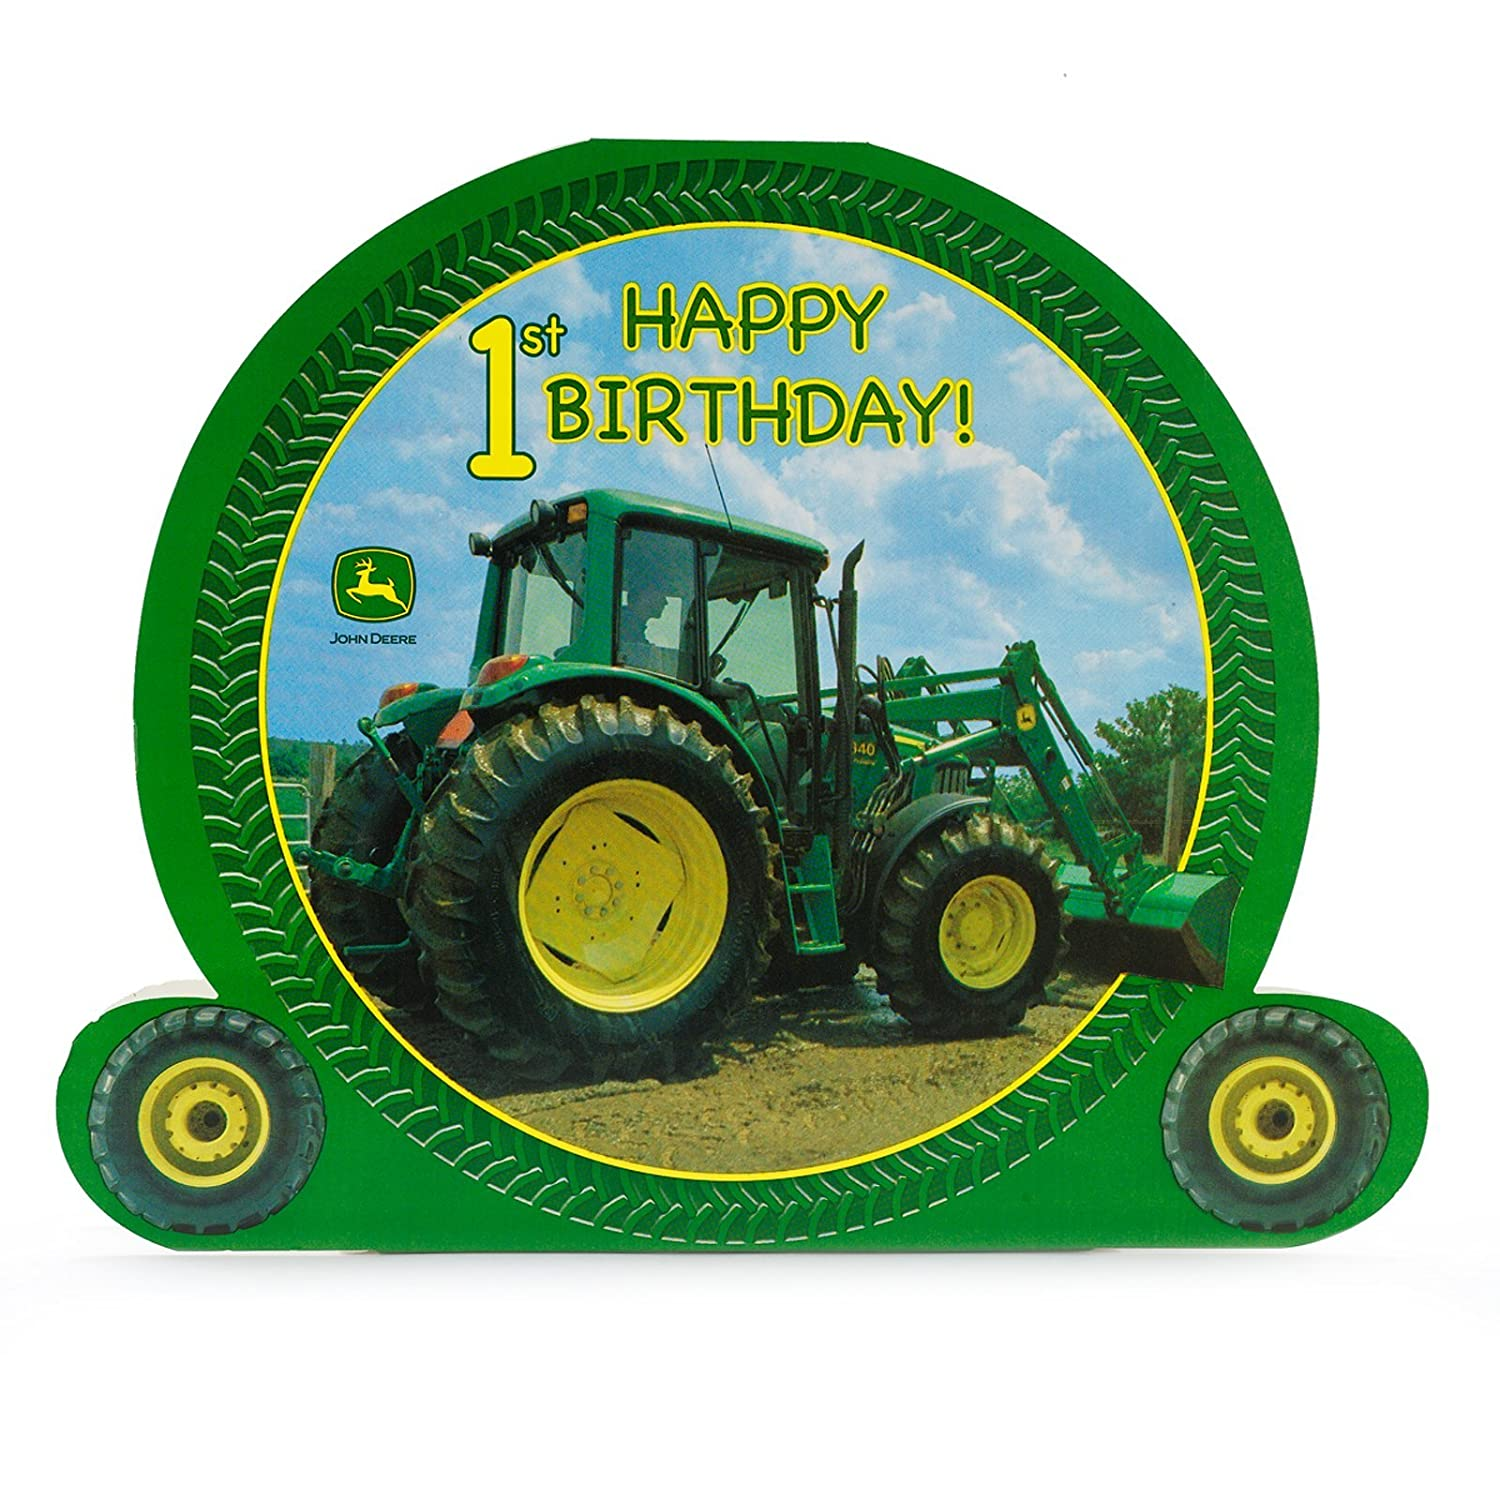 Amazon.com: Party Destination 169300 John Deere 1st Birthday ...